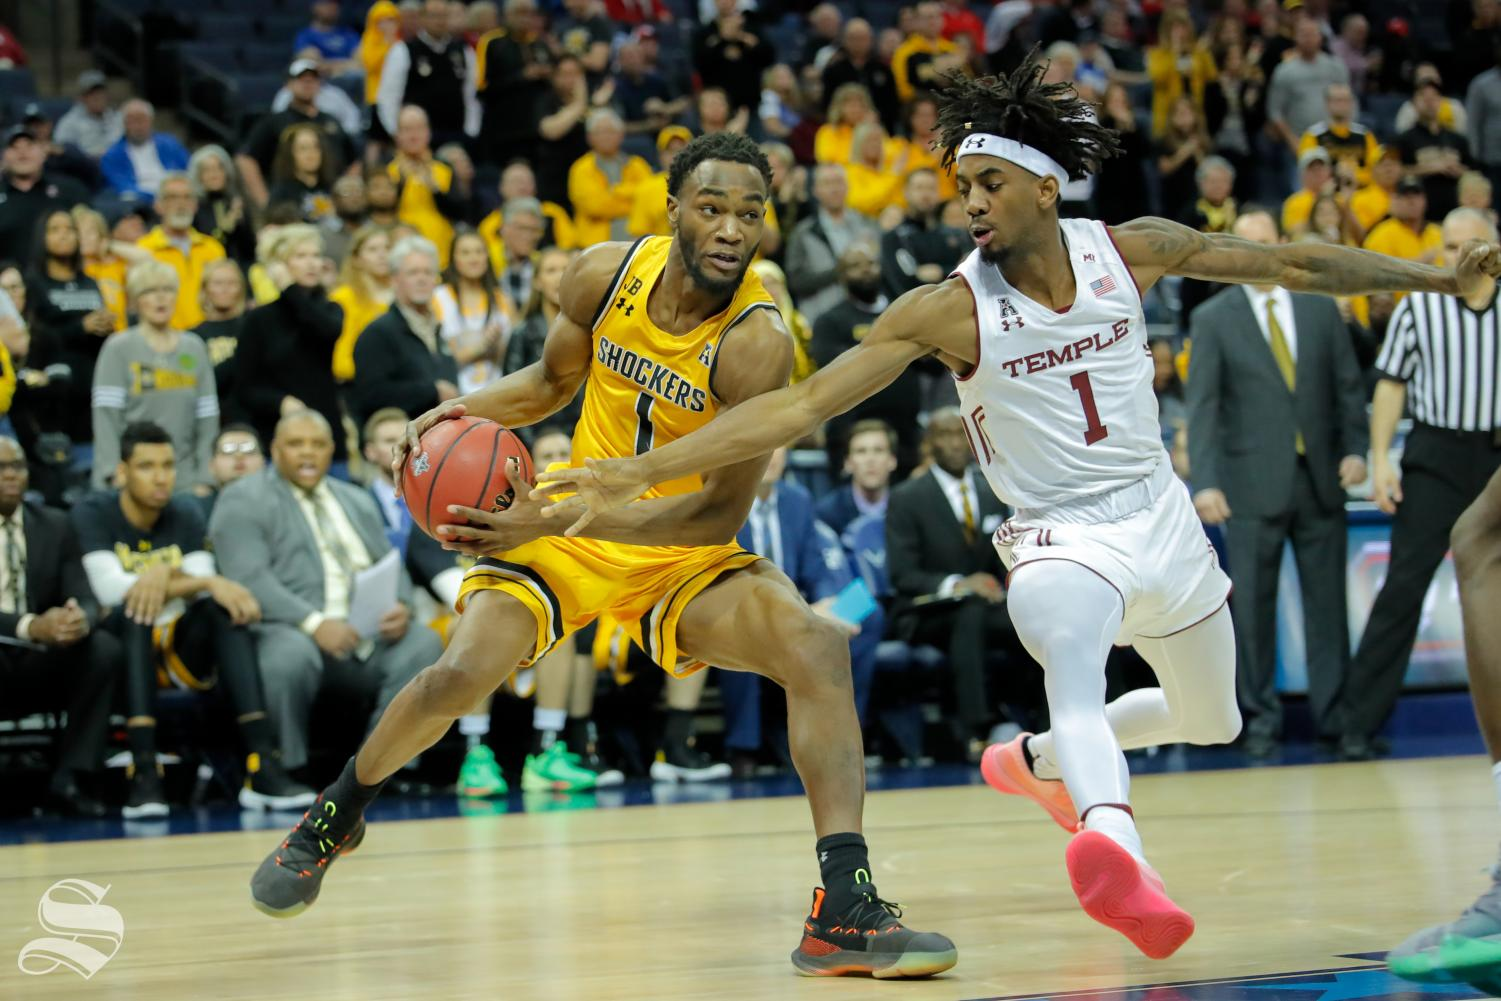 Wichita State's Markis McDuffie drives on Temple's Quinton Rose during the quarterfinals of the American Athletic Conference tournament. McDuffie scored a career-high in the game.